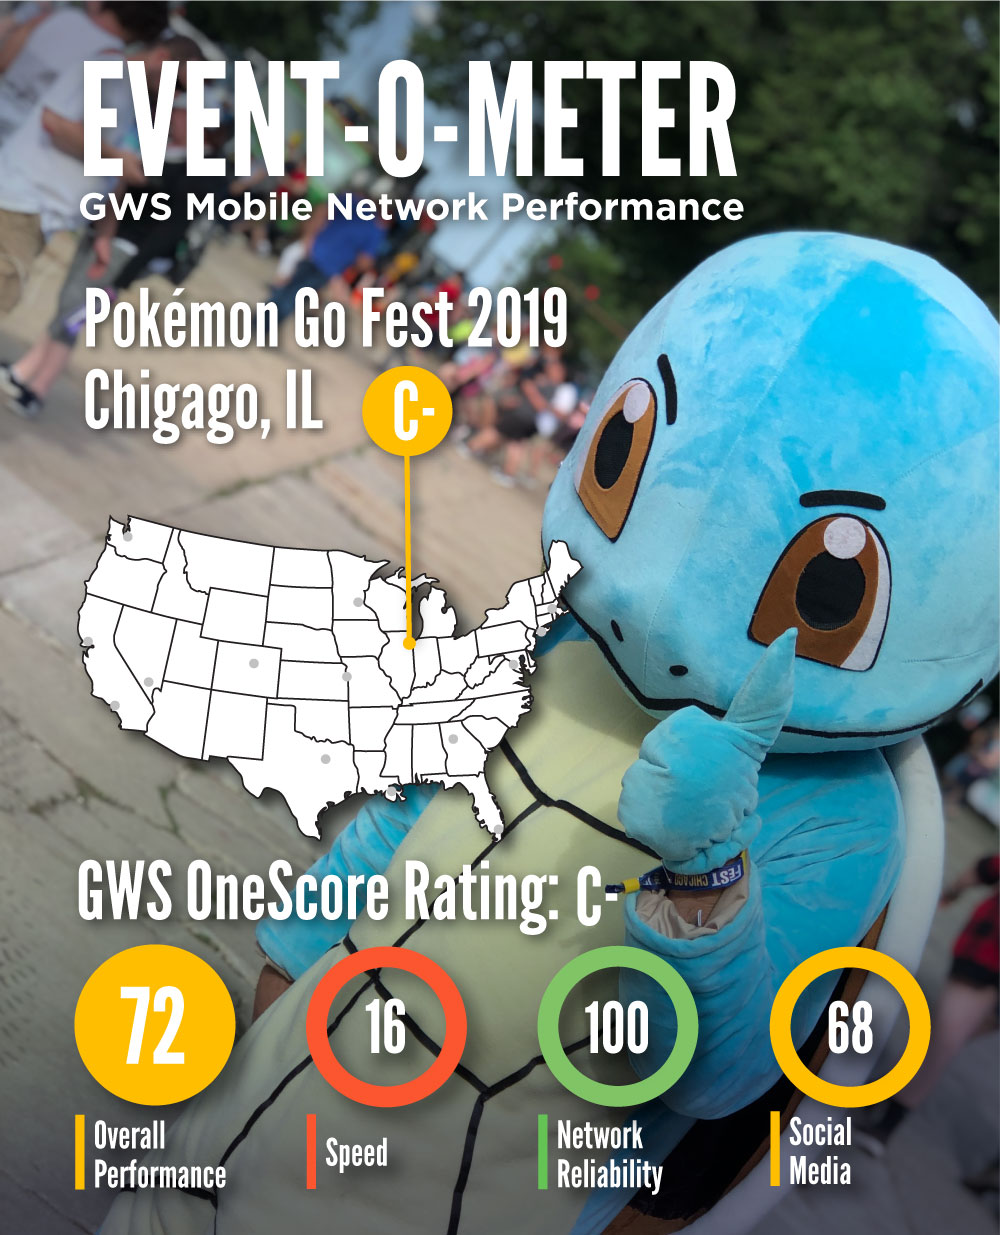 Reliable Mobile Networks Keep Players Connected at Pokémon